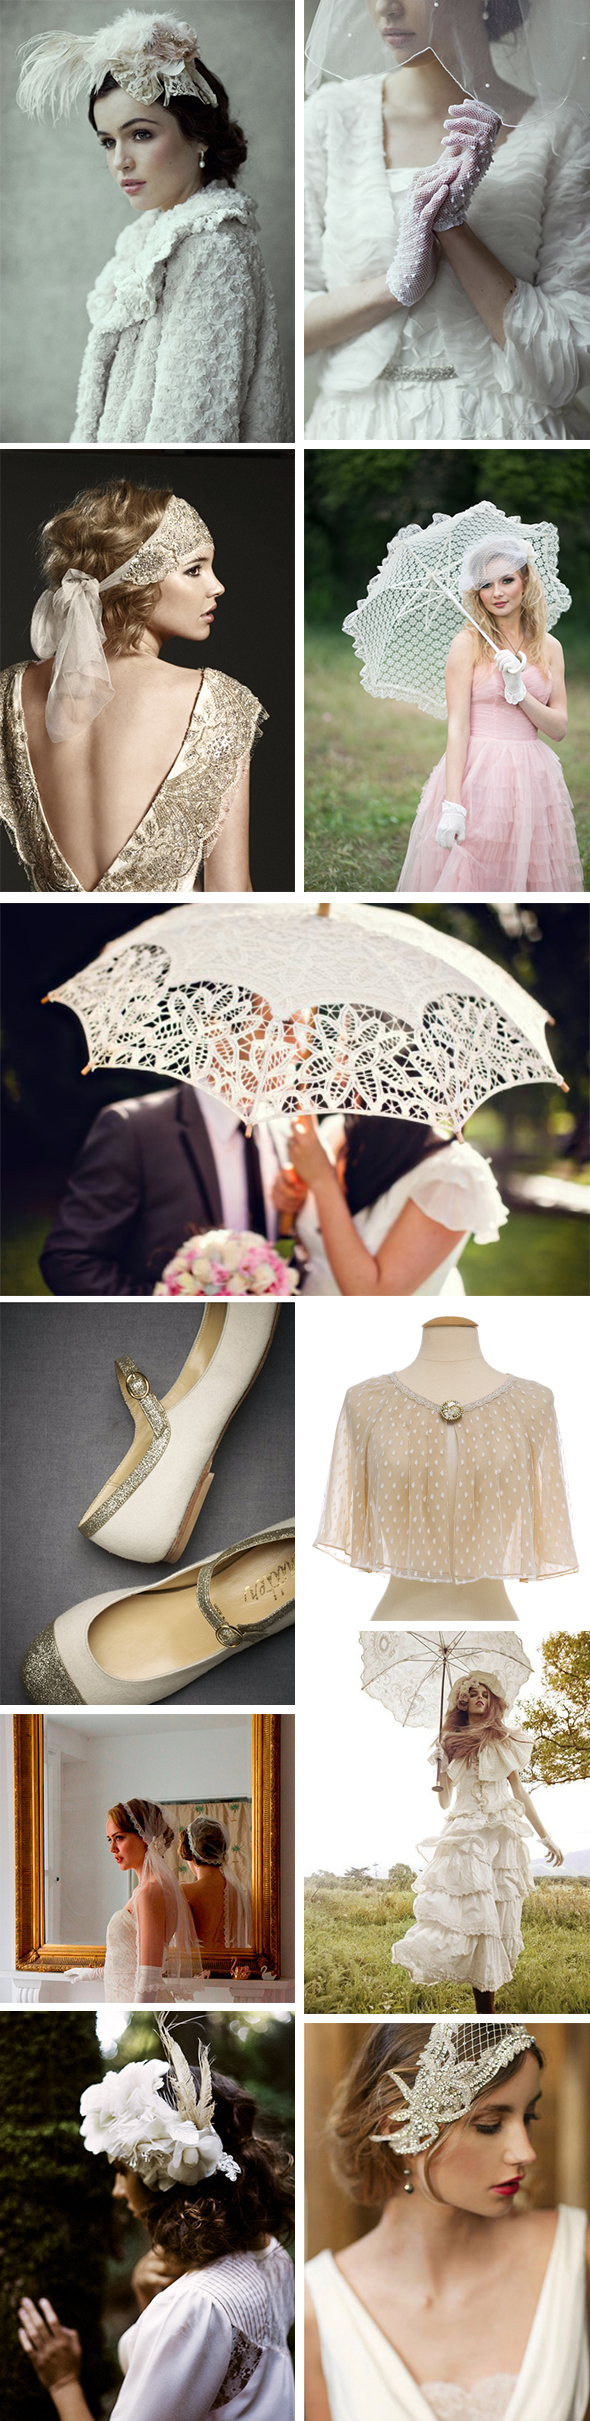 vintage+wedding+accessories